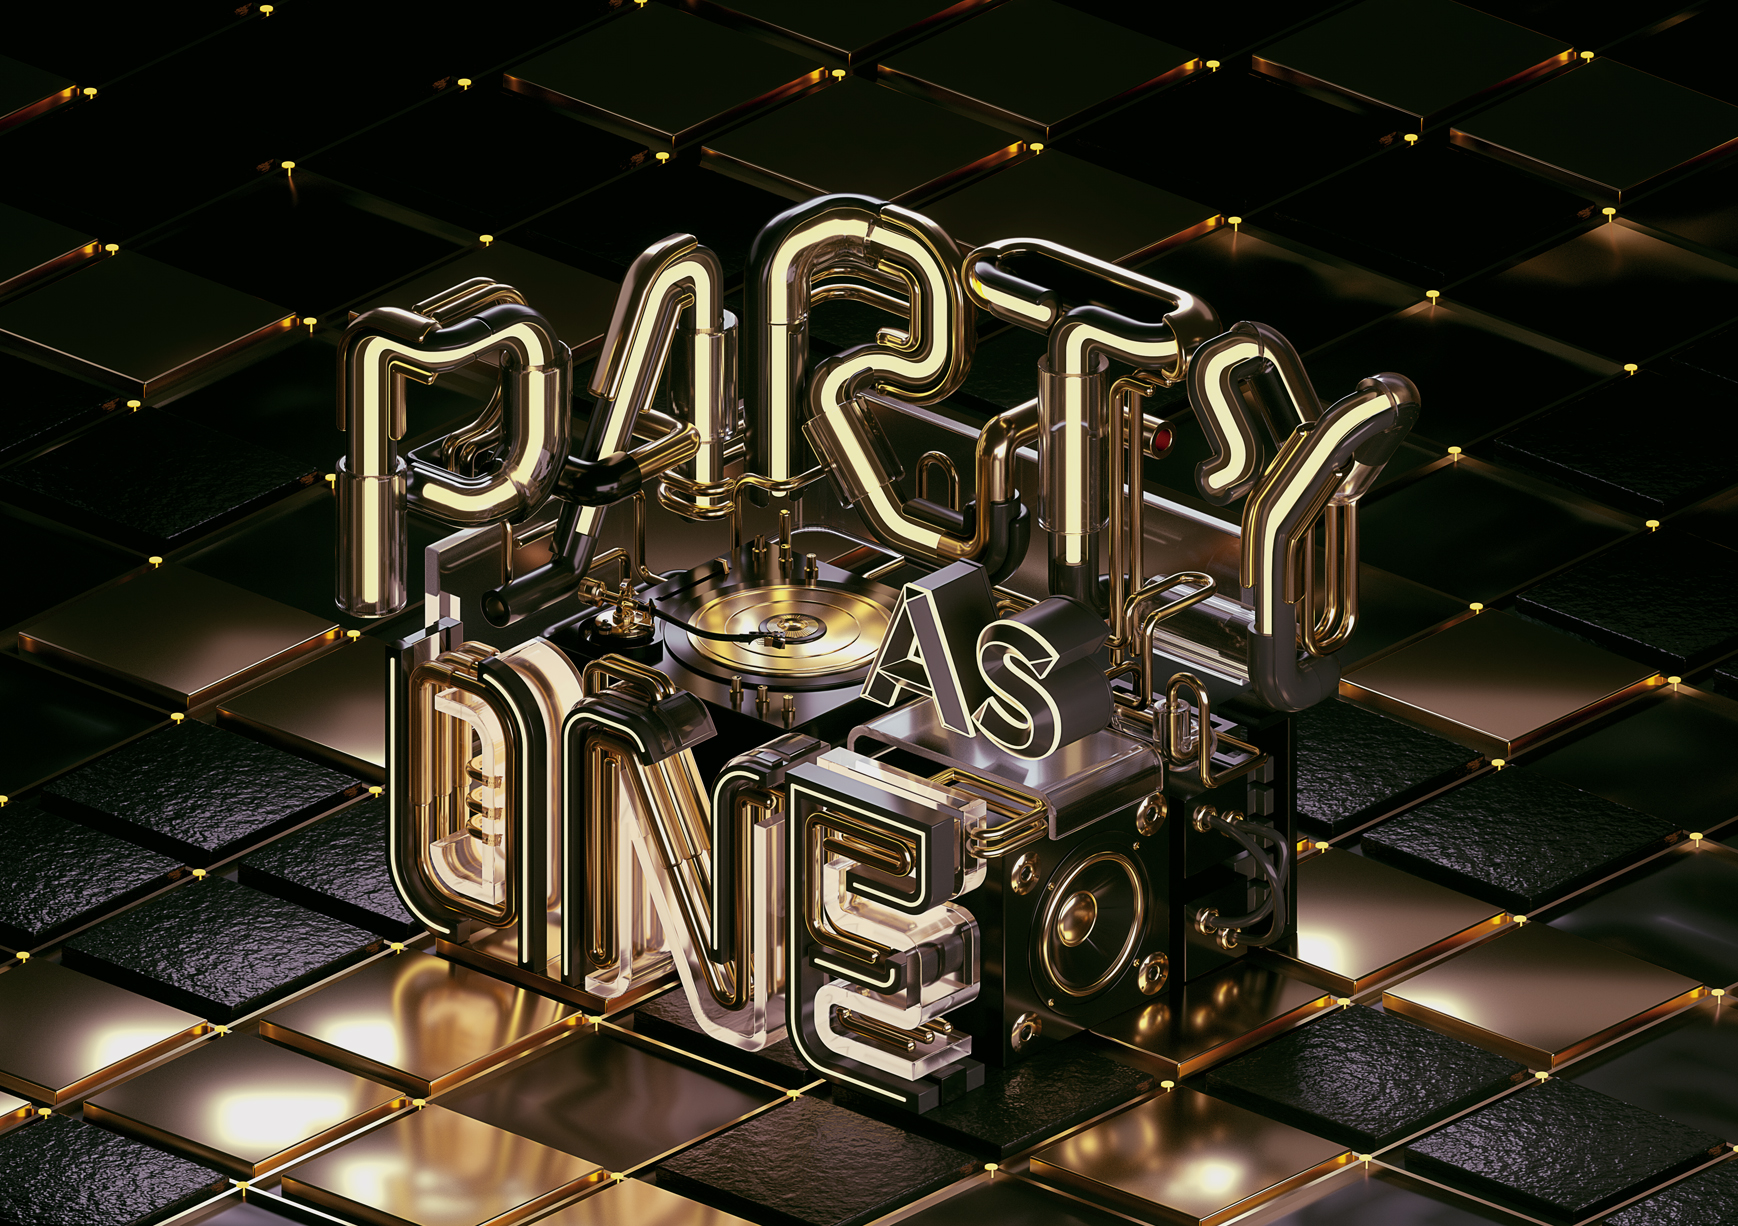 Party As One in Black - A commercial typography key visual and motion graphics by Machineast graphic design studio Singapore